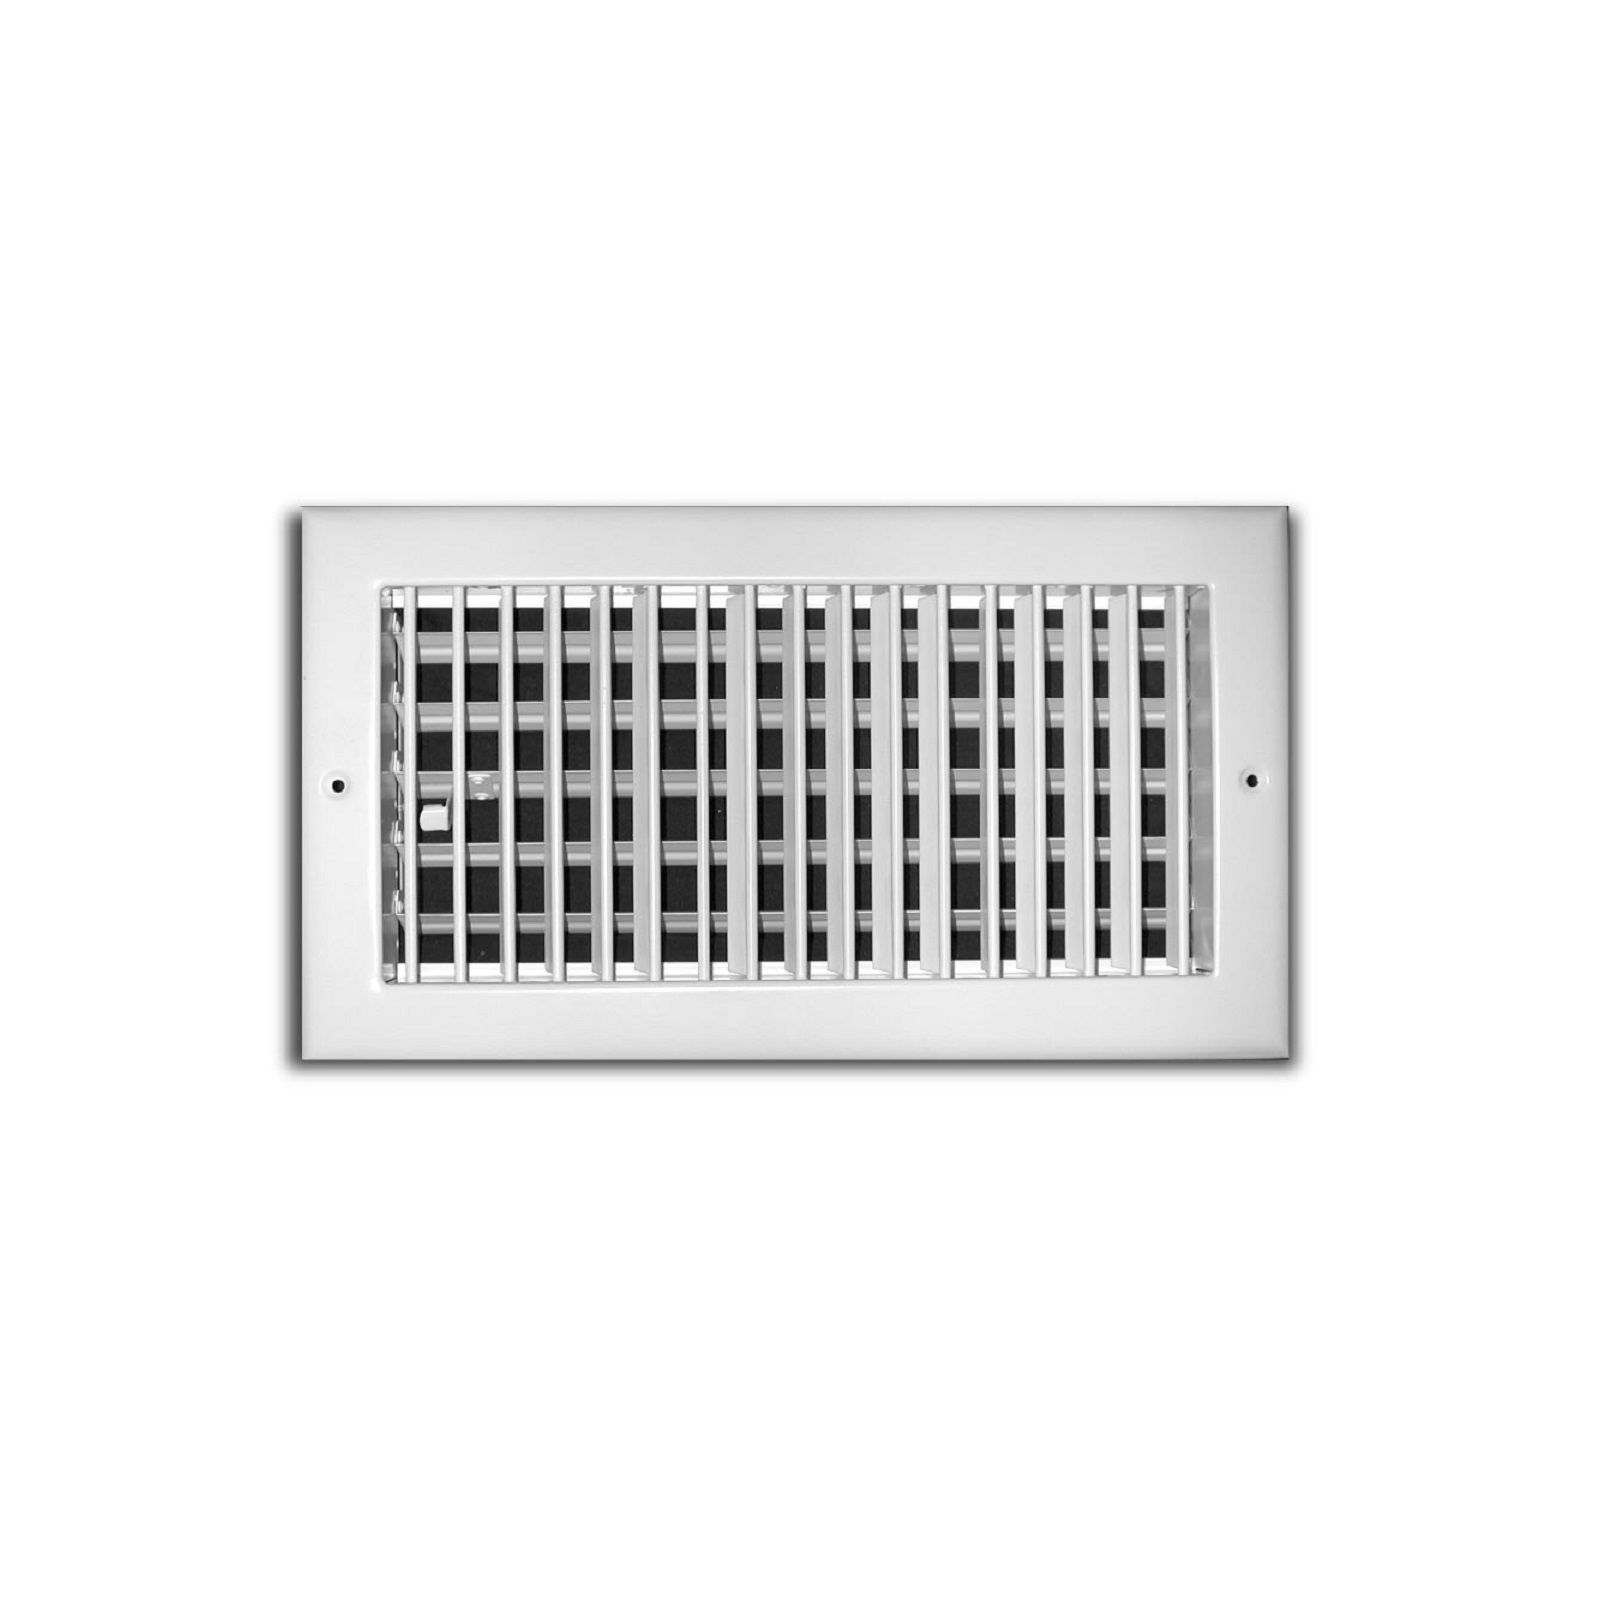 "TRUaire 210VM 16X04 - Steel Adjustable 1-Way Wall/Ceiling Register With Multi Shutter Damper, White, 16"" X 04"""